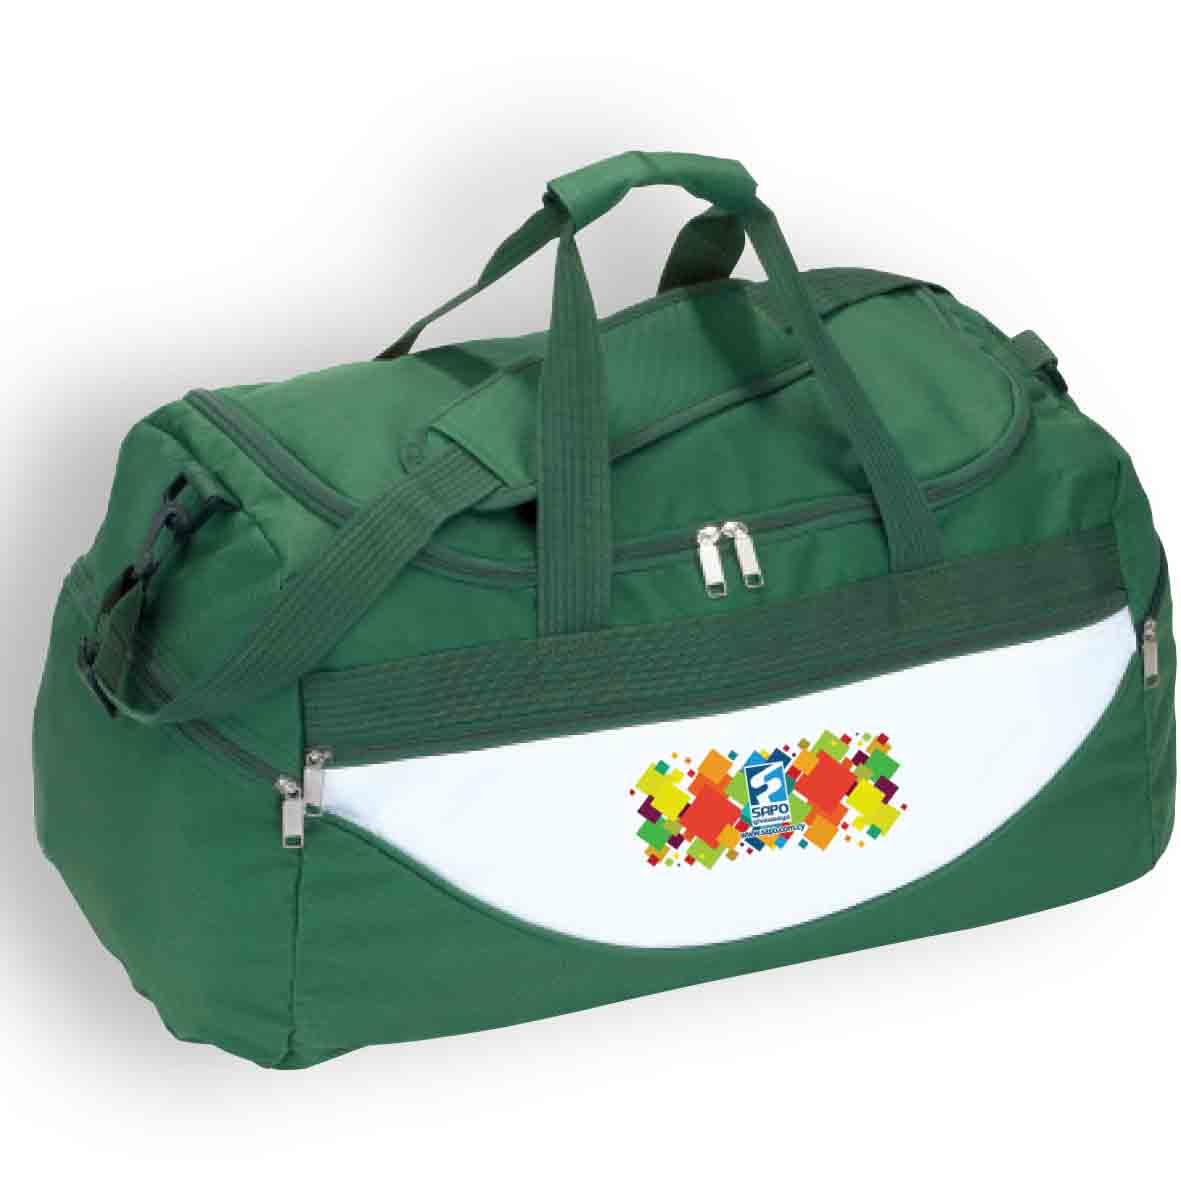 """Champ"" travel bag - Green ns-702 g subl"